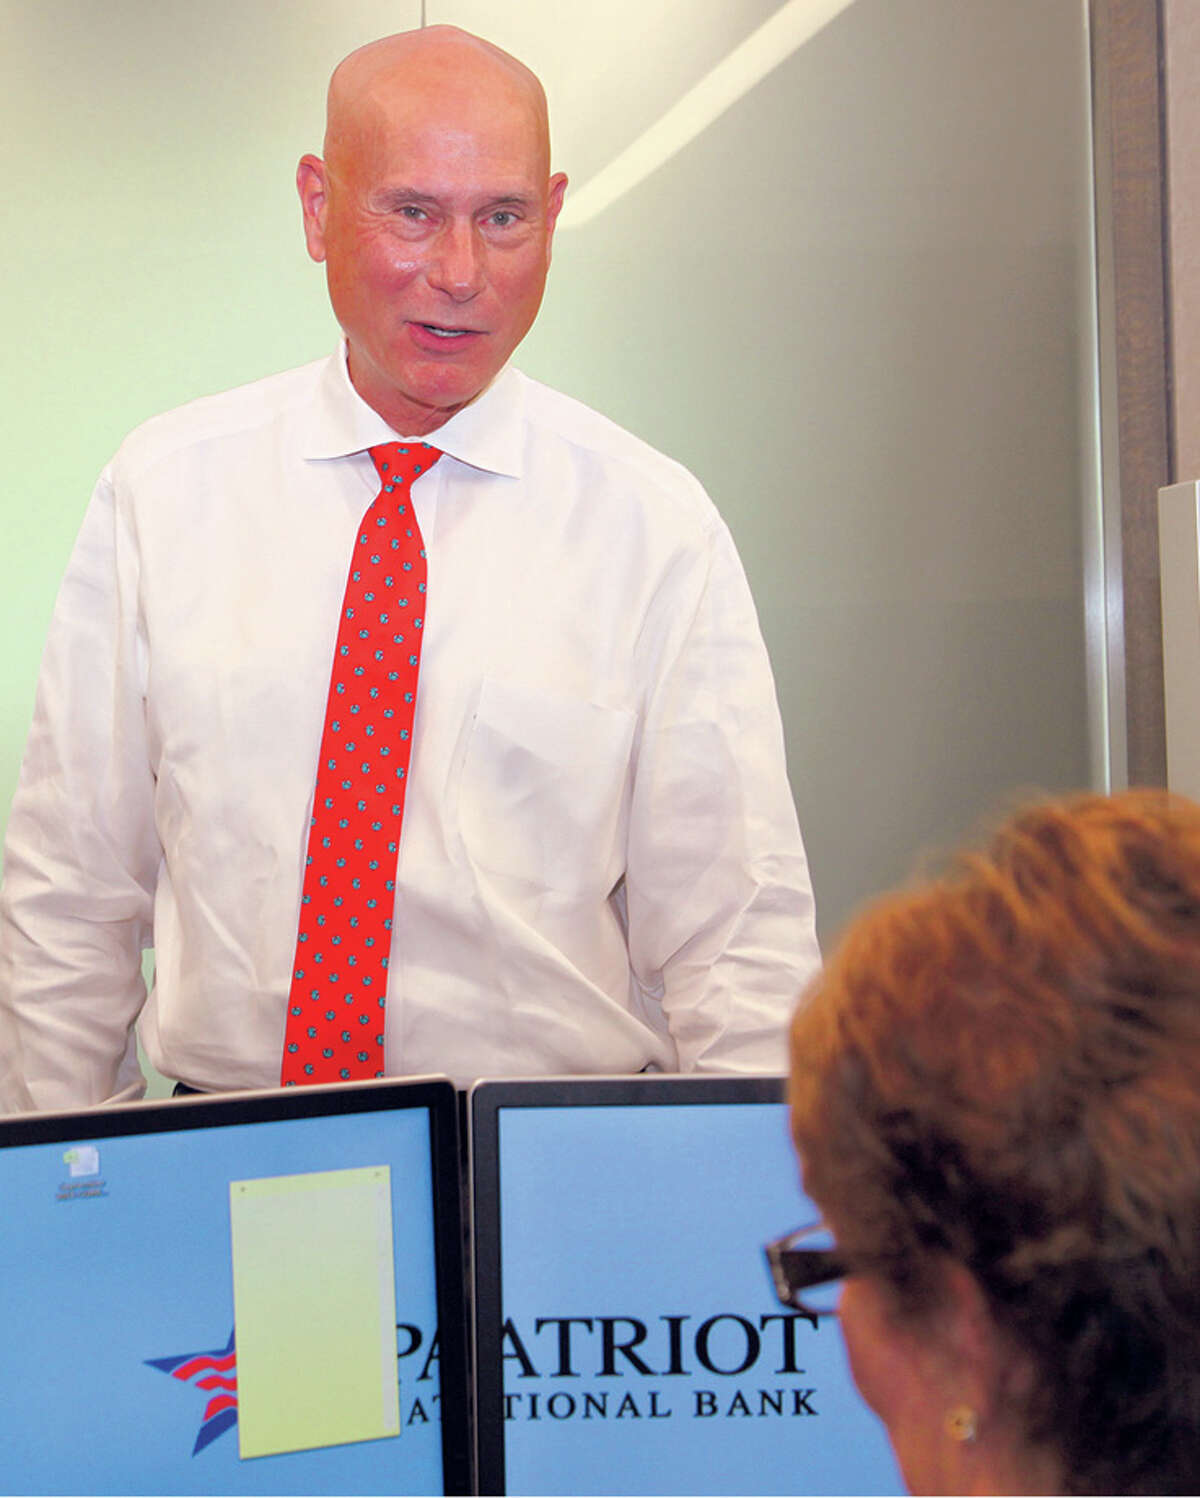 Patriot Bank CEO Ken Neilson in August 2015, prior to the Stamford, Conn.-based company changing its name from Patriot National Bank.